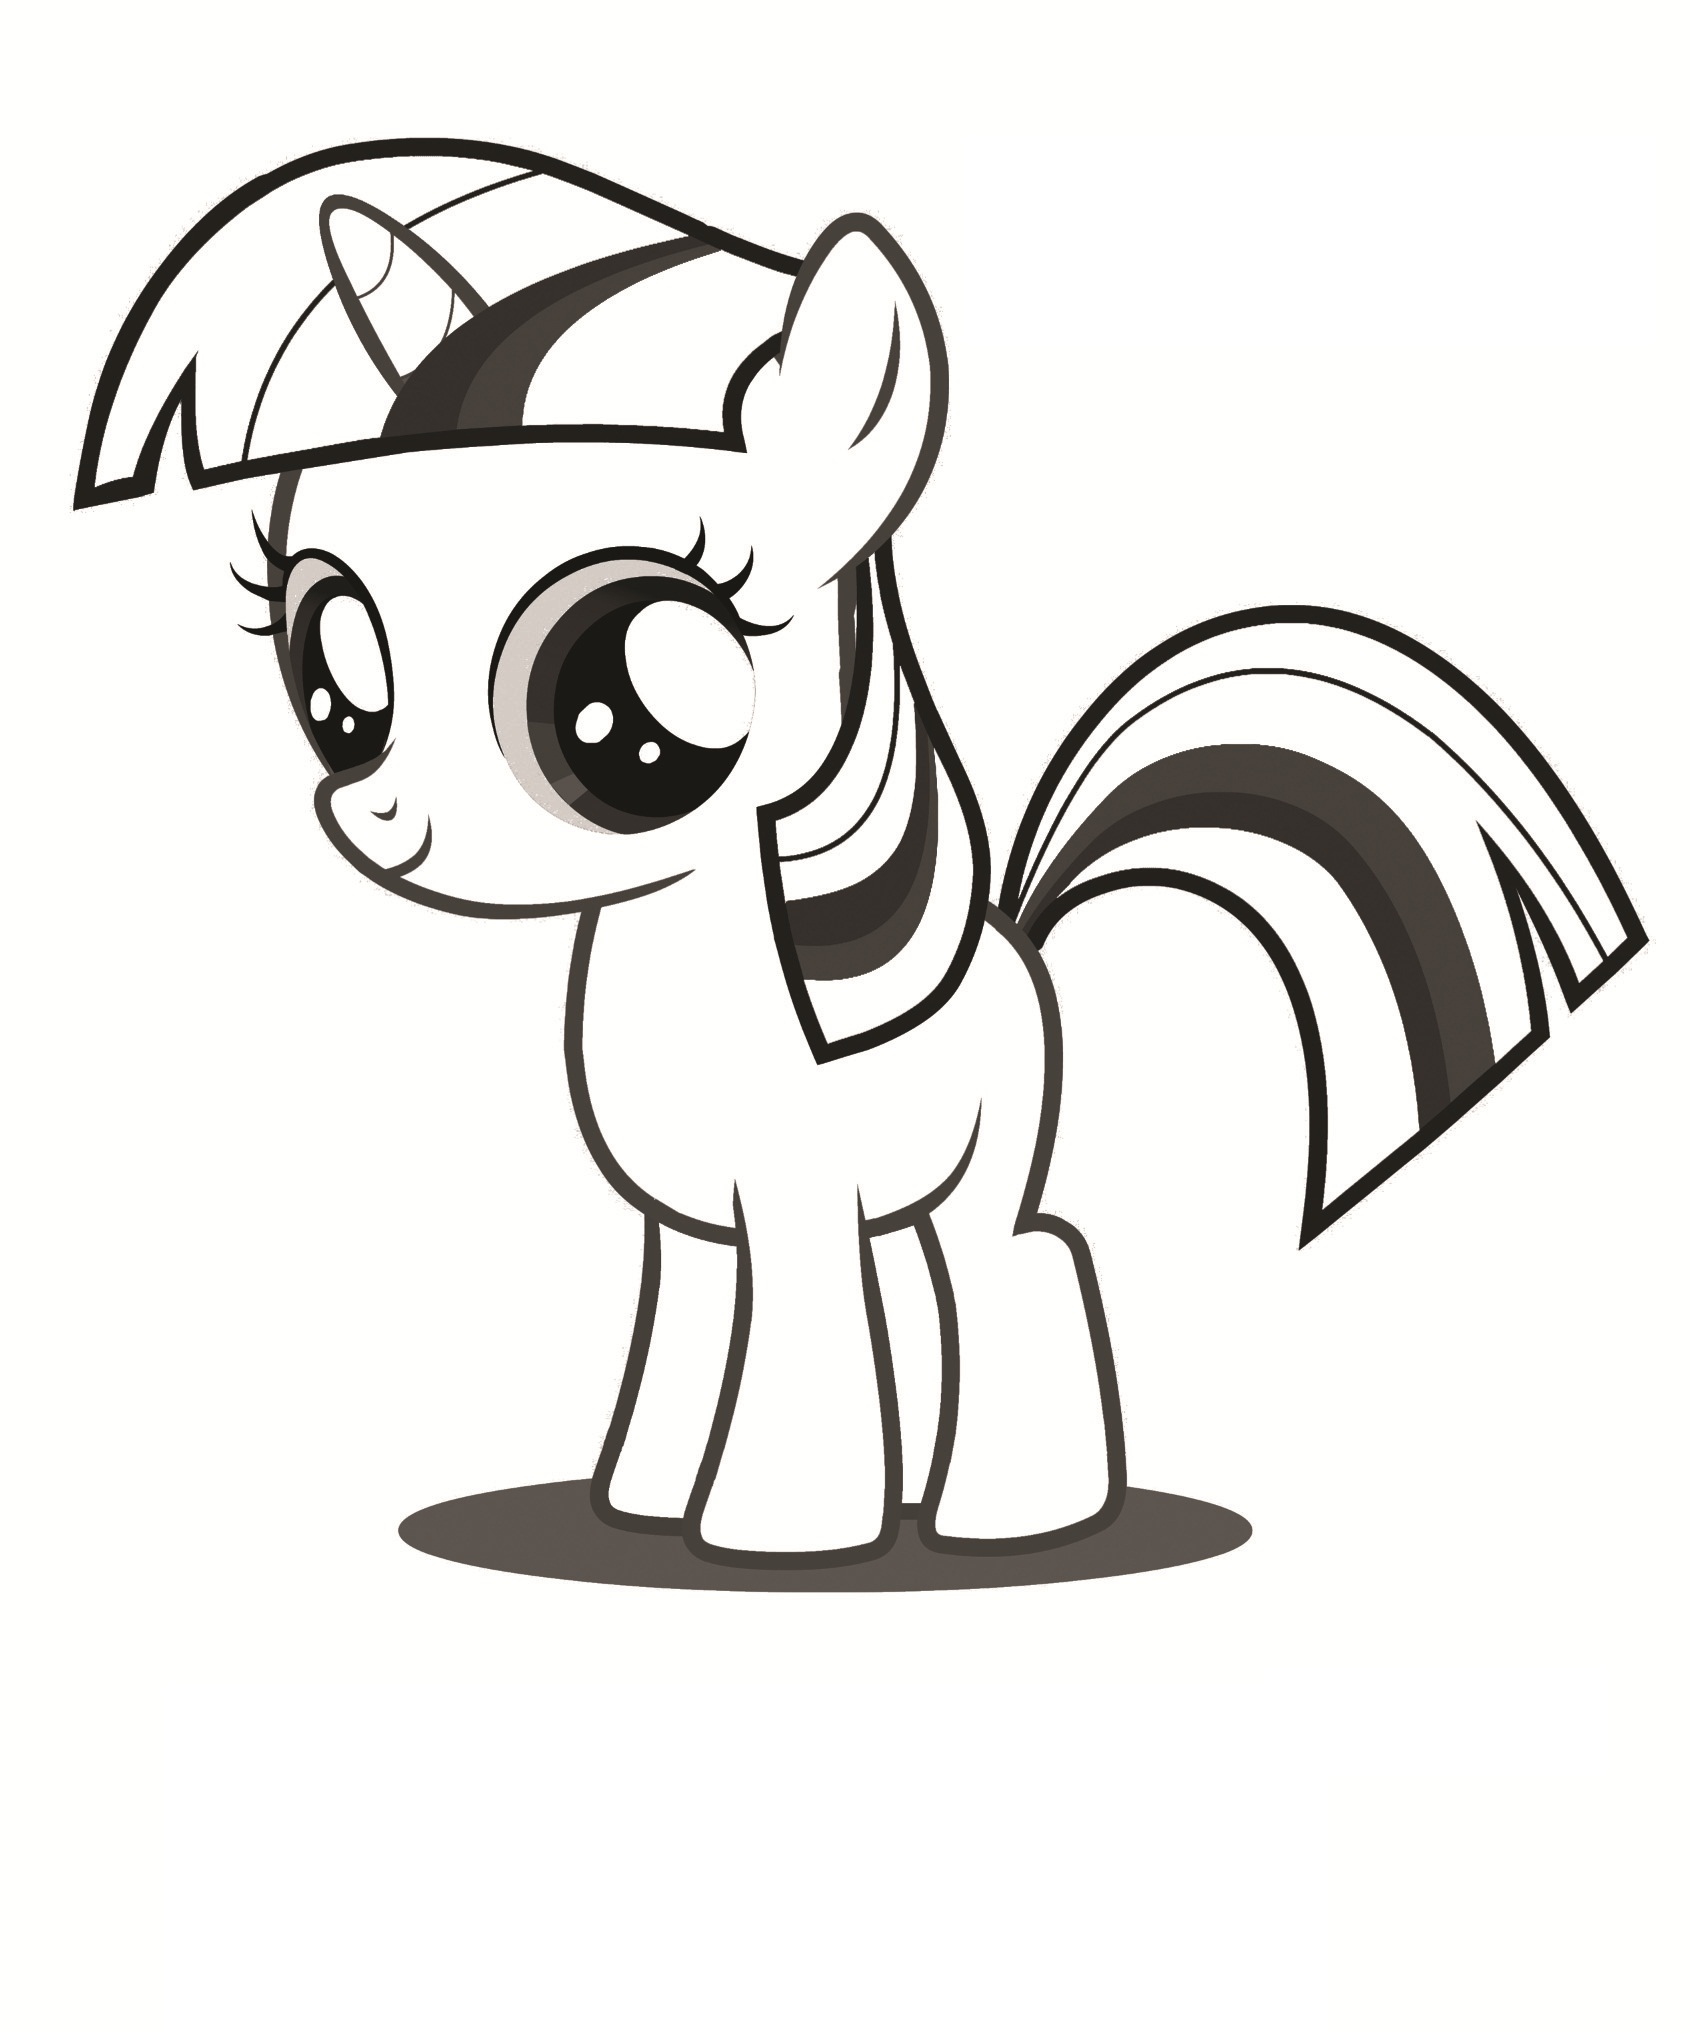 Free coloring pages - My Little Pony Free Coloring Pages